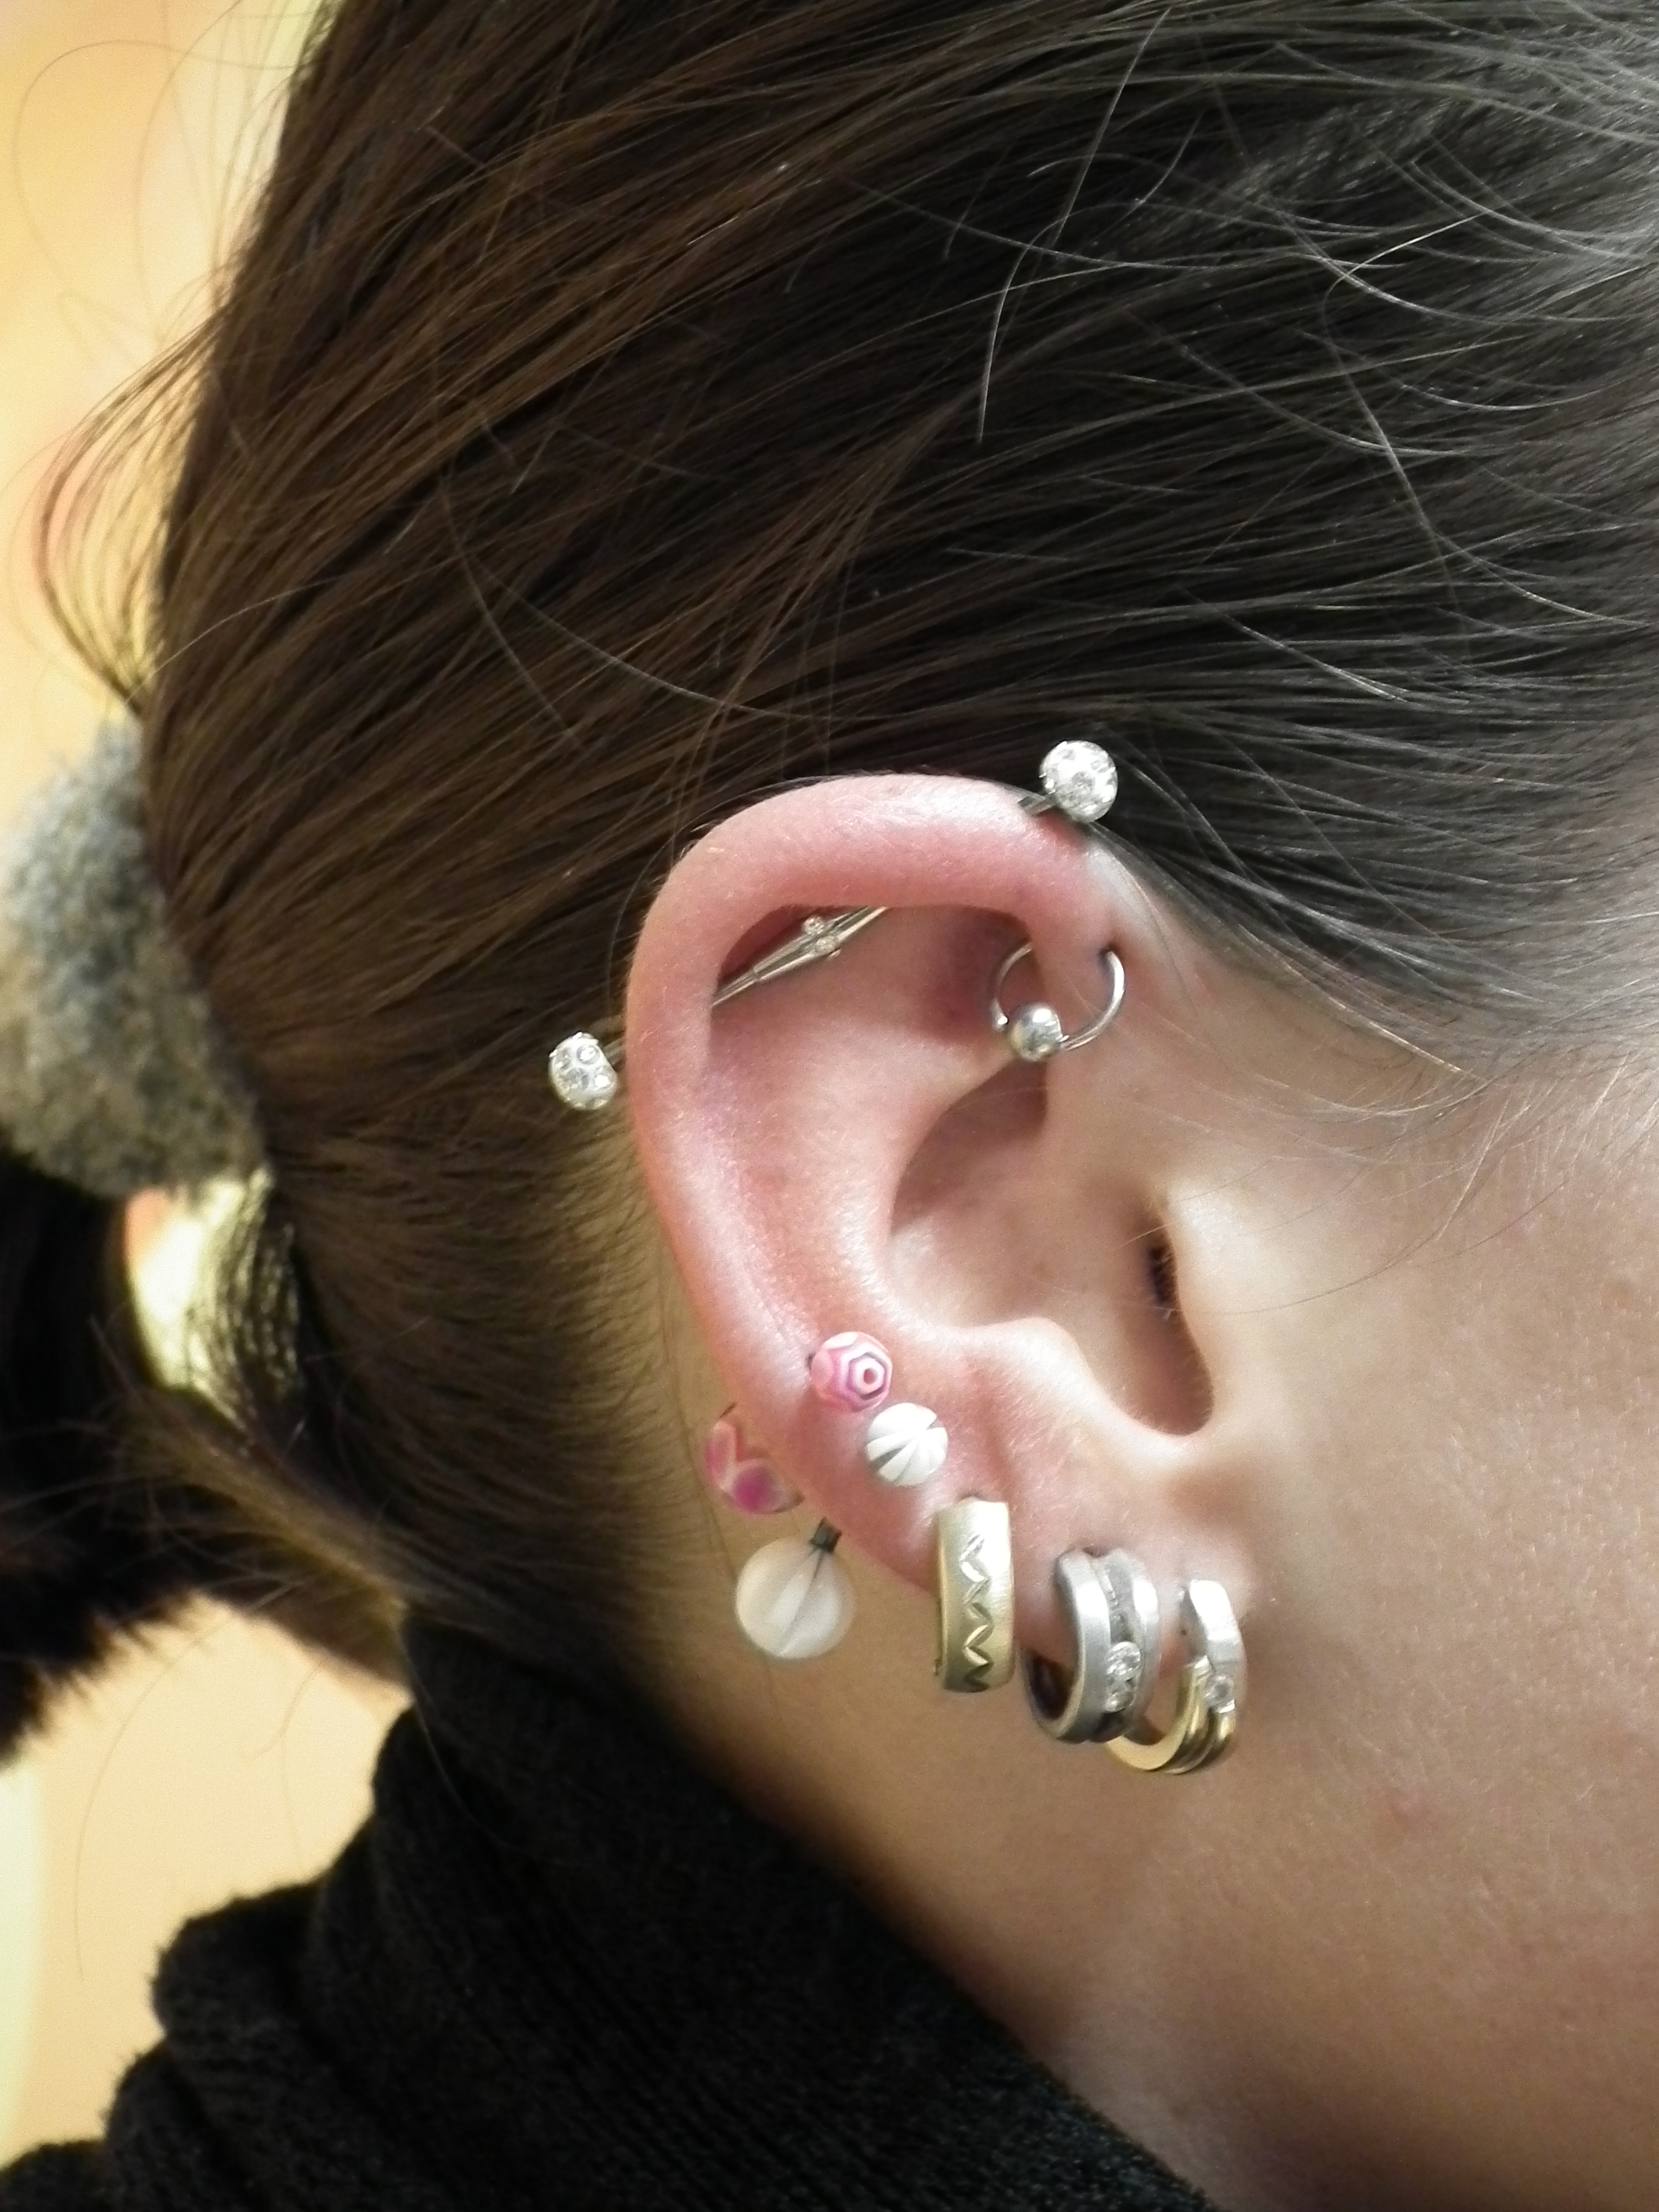 Piercing; Ohr; Industrial; Forward Helix